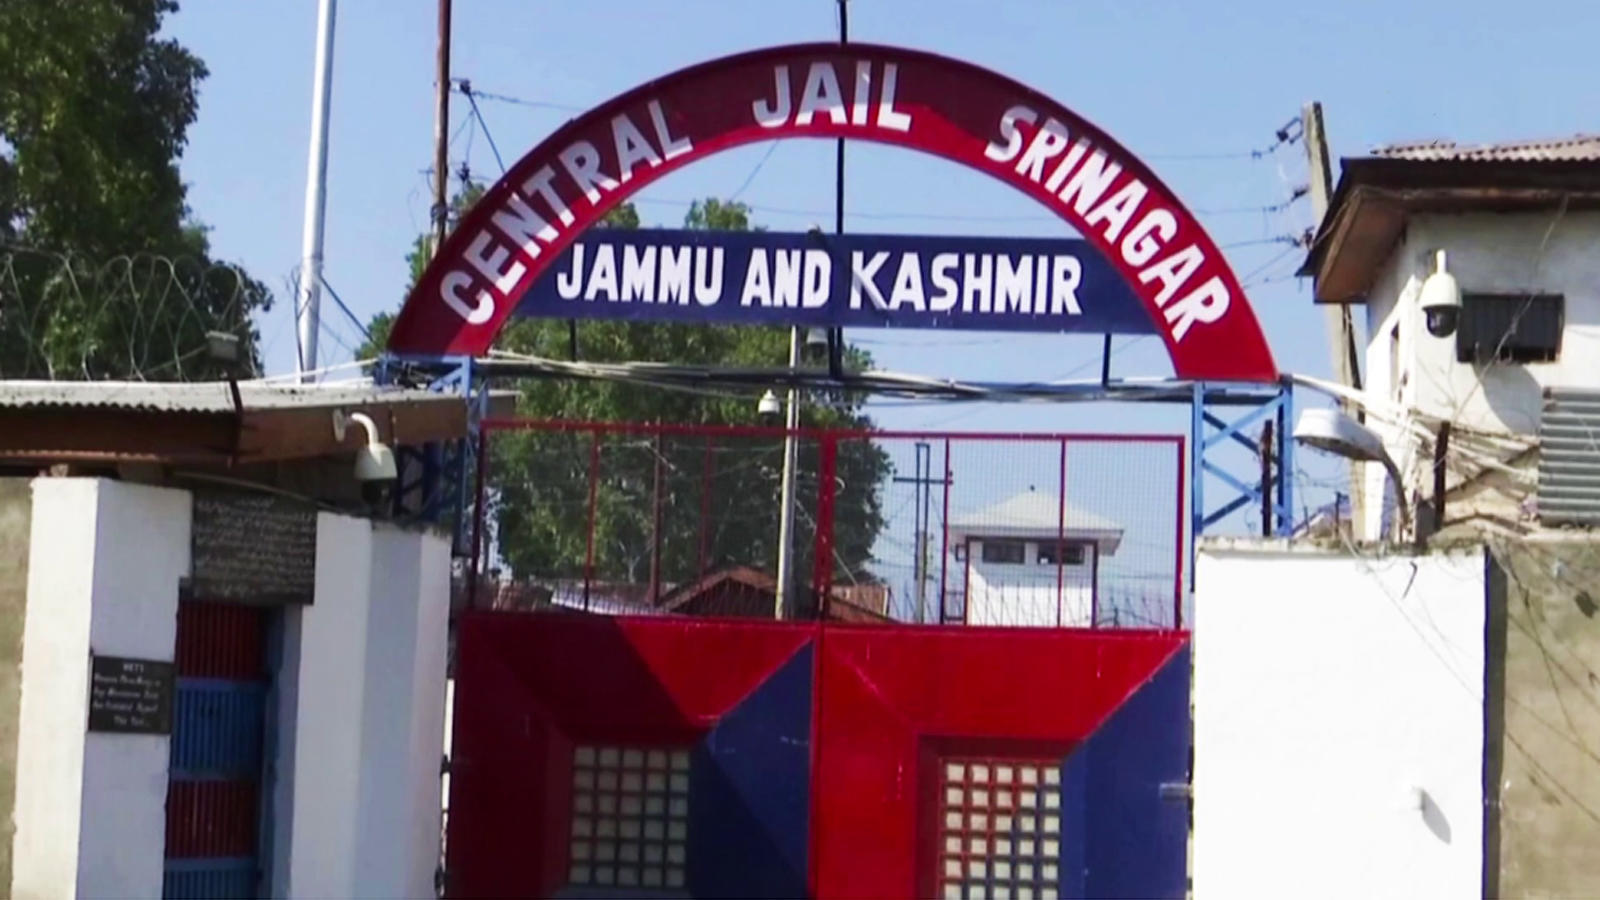 Srinagar Central Jail gets upgrade to offer facilities to inmates | News - Times of India Videos